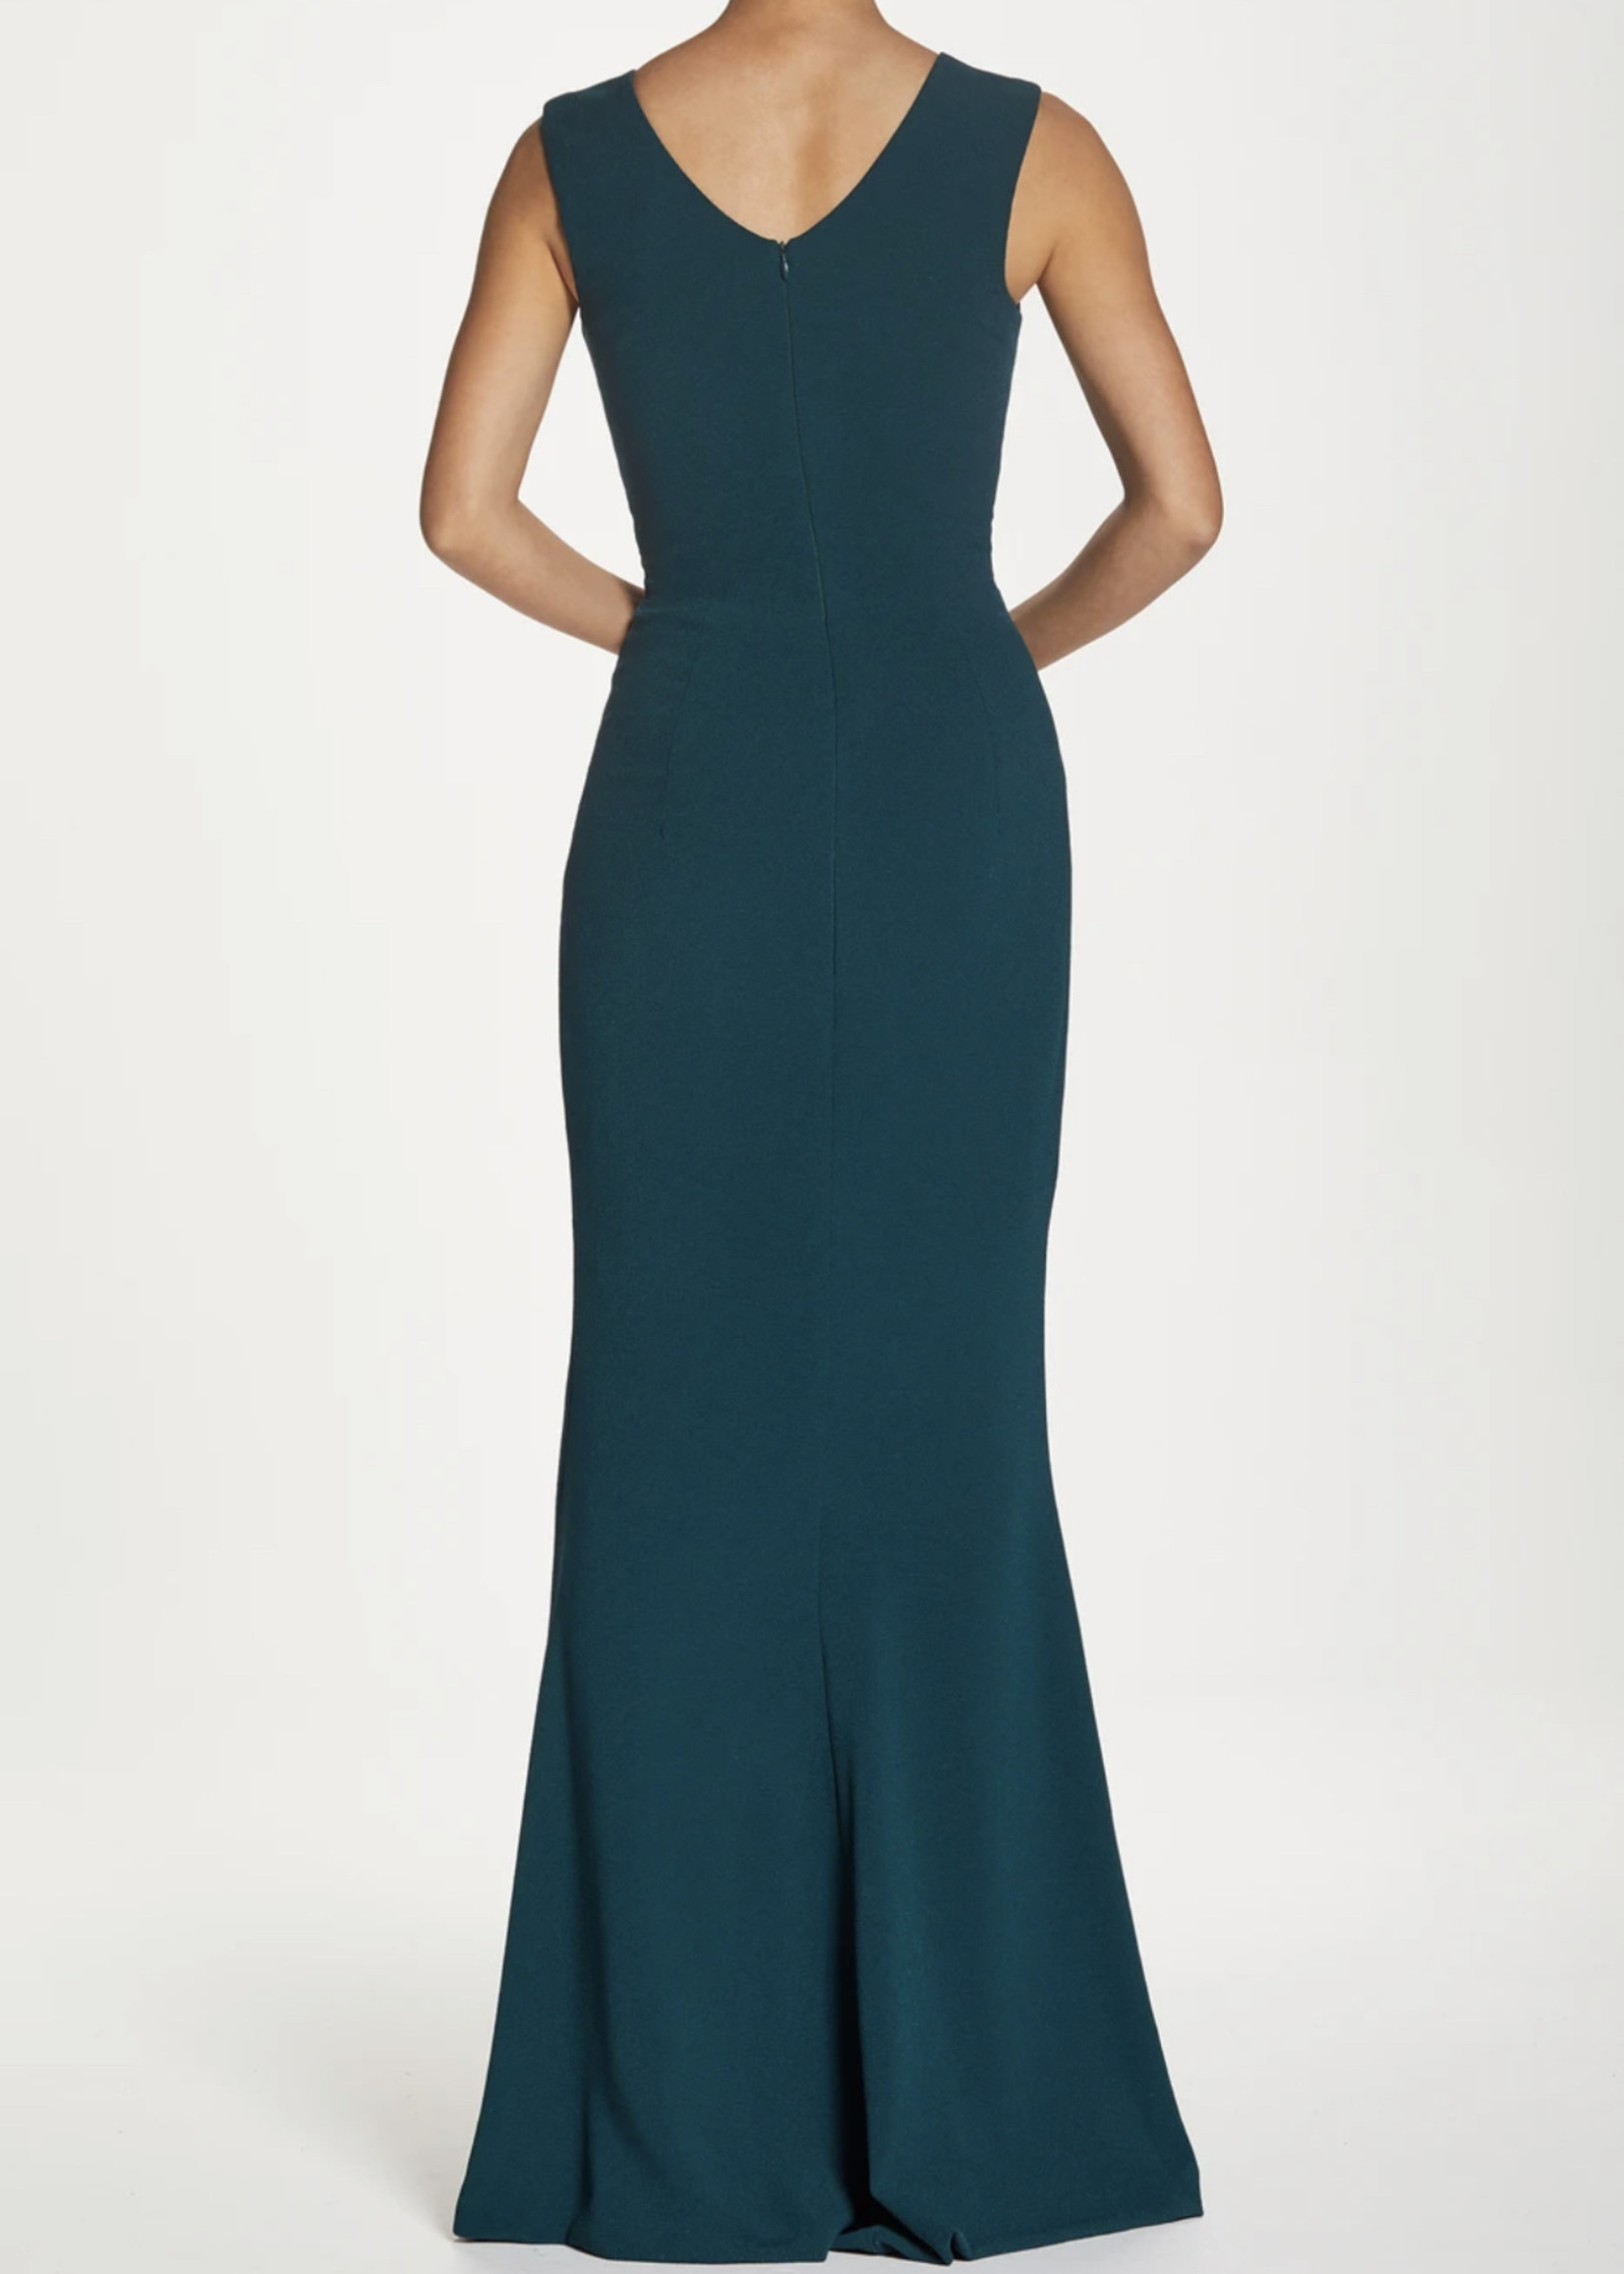 Elitaire Boutique Sandra Gown in Pine